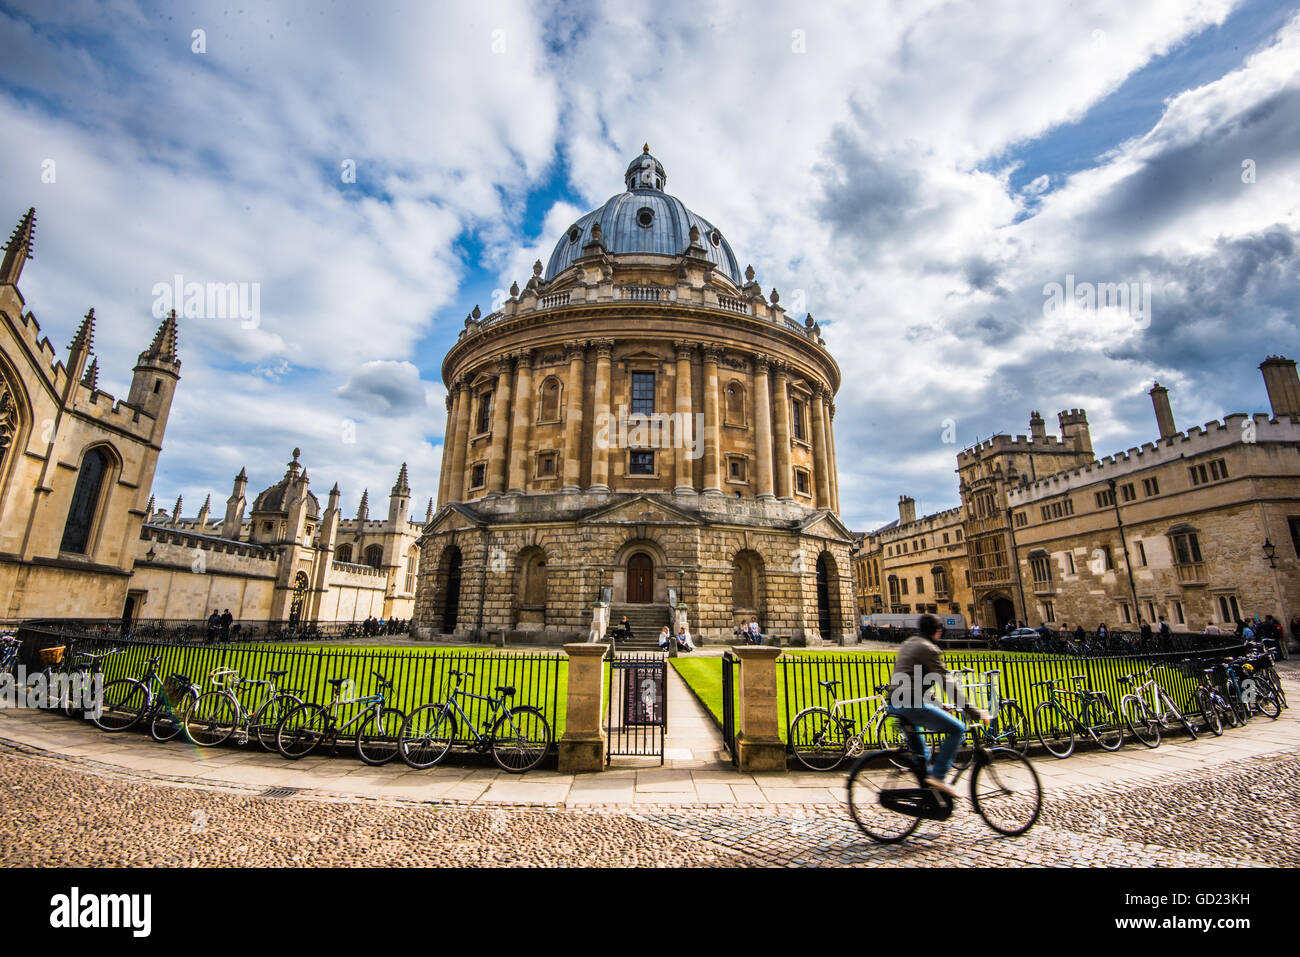 Radcliffe Camera with cyclist, Oxford, Oxfordshire, England, United Kingdom, Europe - Stock Image